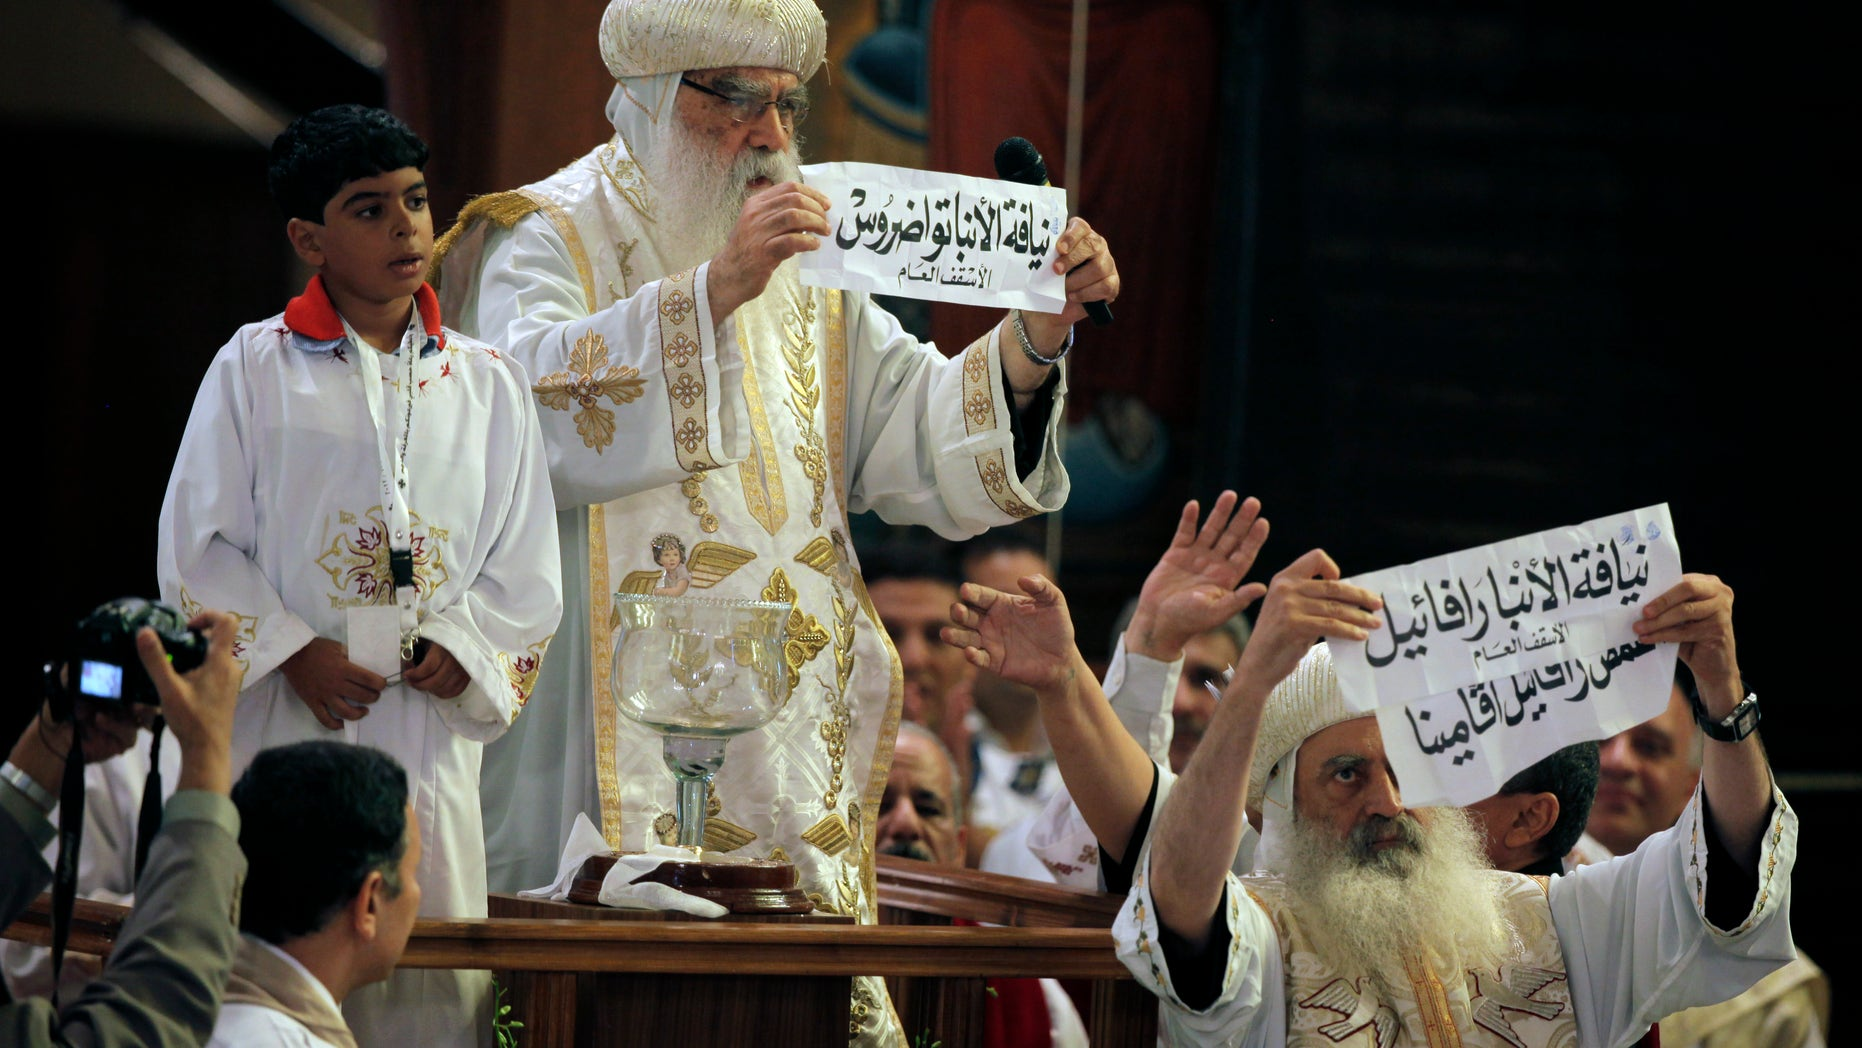 Coptic Christians in Egypt, led by acting Coptic Pope Pachomios, center, say the nation doesn't do enough to protect them from discrimination inside and outside of the nation's borders. (AP)